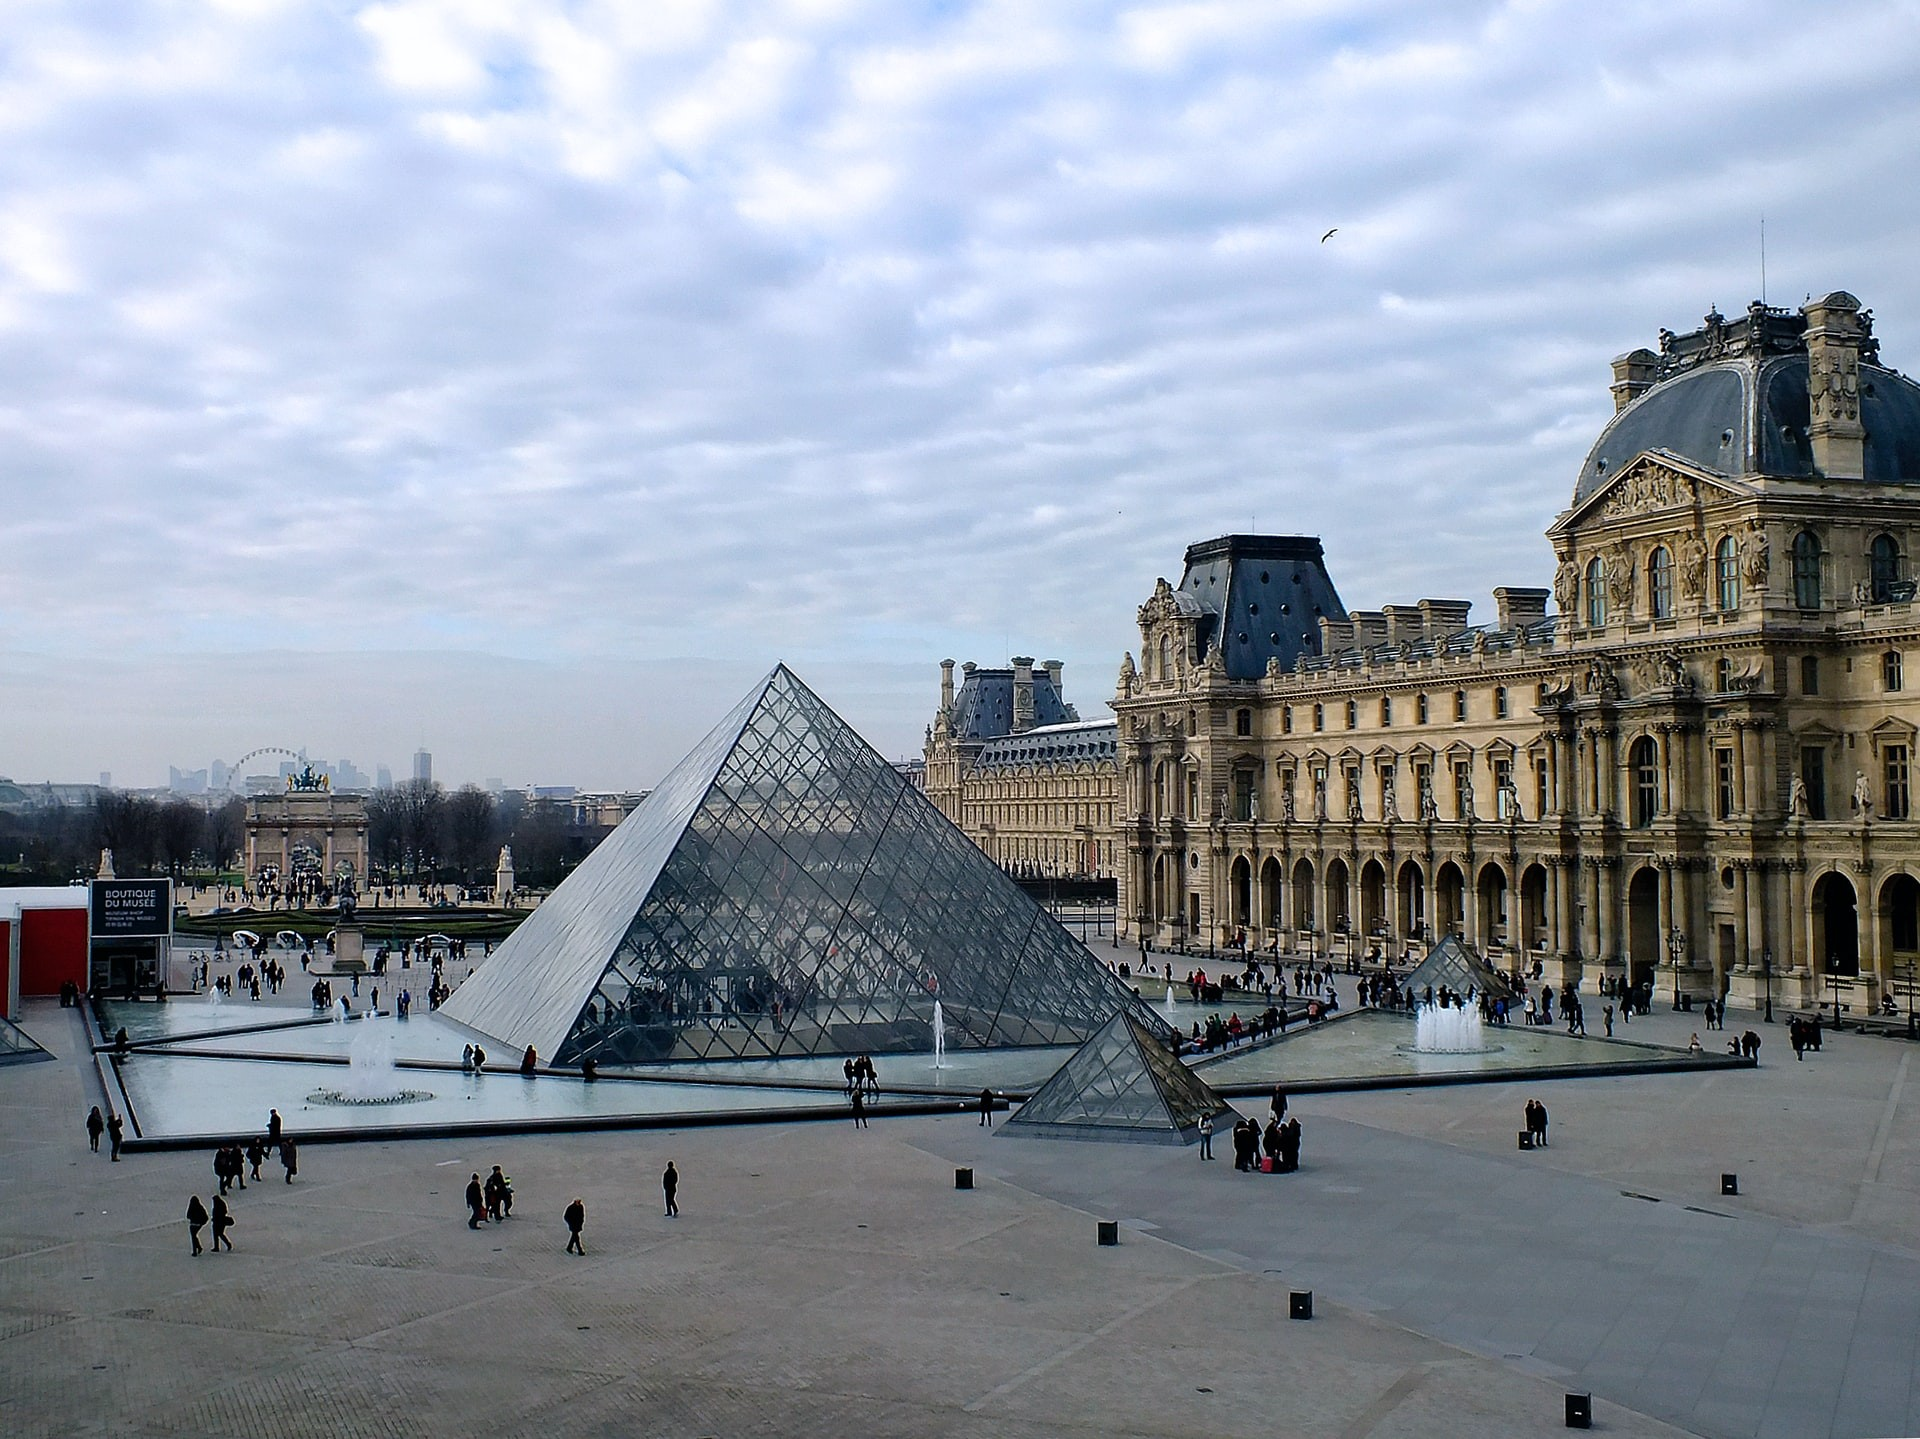 The outside of the Louvre museum in Paris, France.